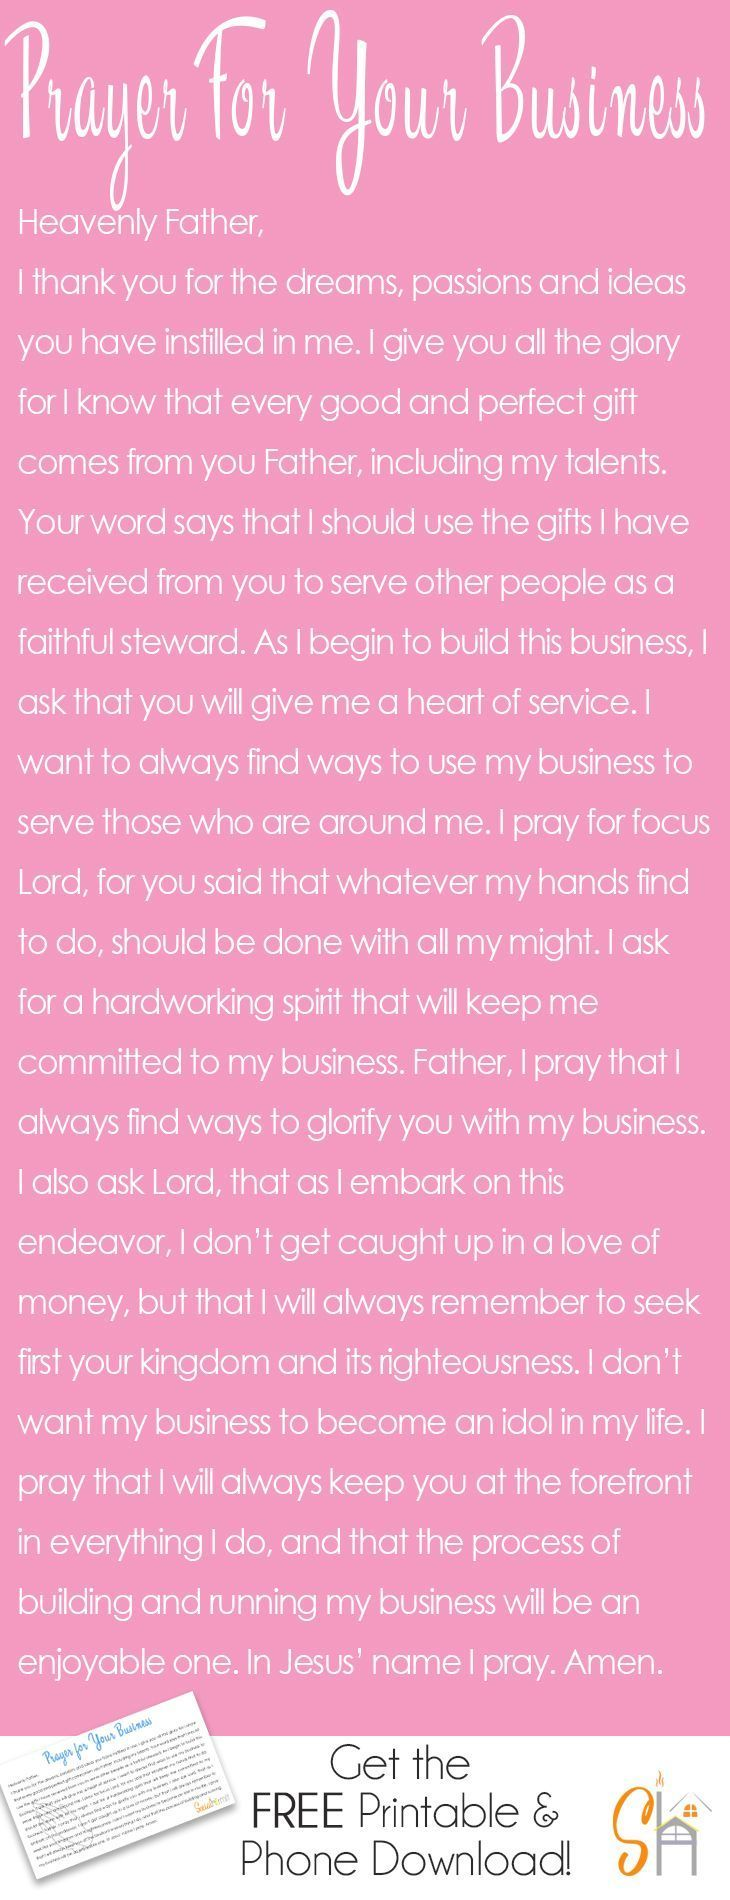 Working on building a business really requires guidance from the Lord. We need h…